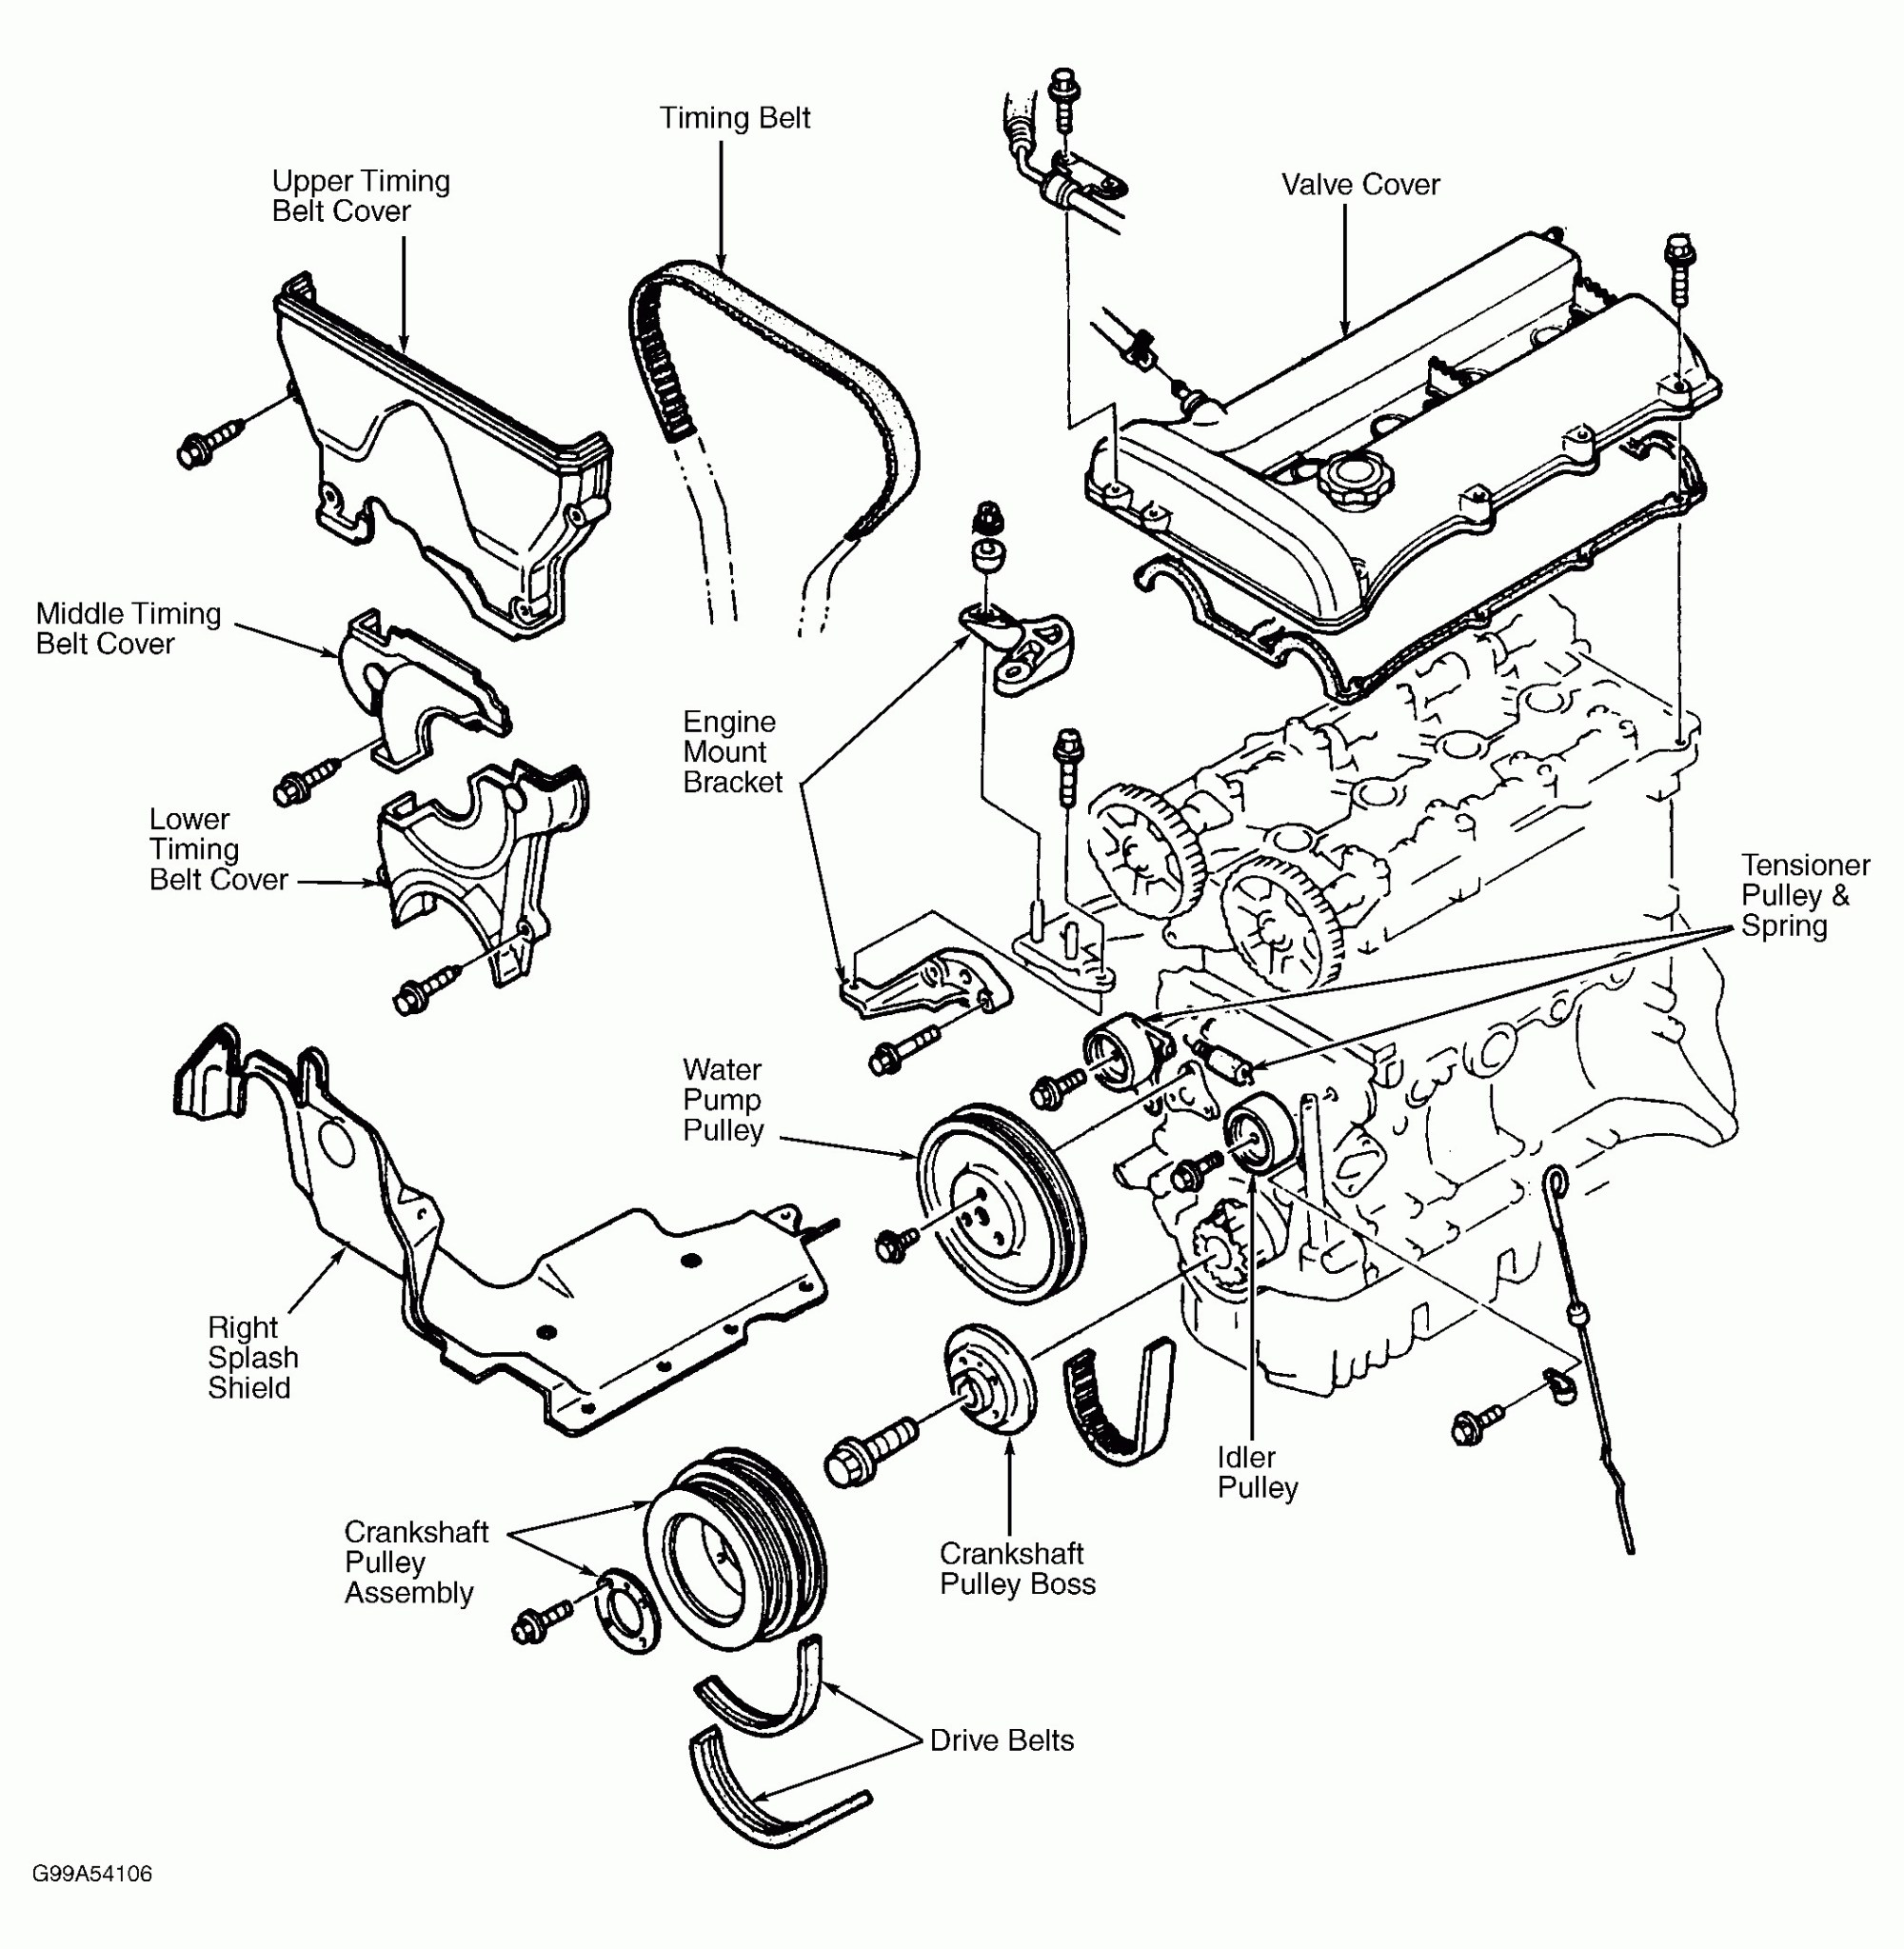 hight resolution of 2000 mazda 626 engine diagram wiring diagram paper 2002 mazda 626 engine diagram